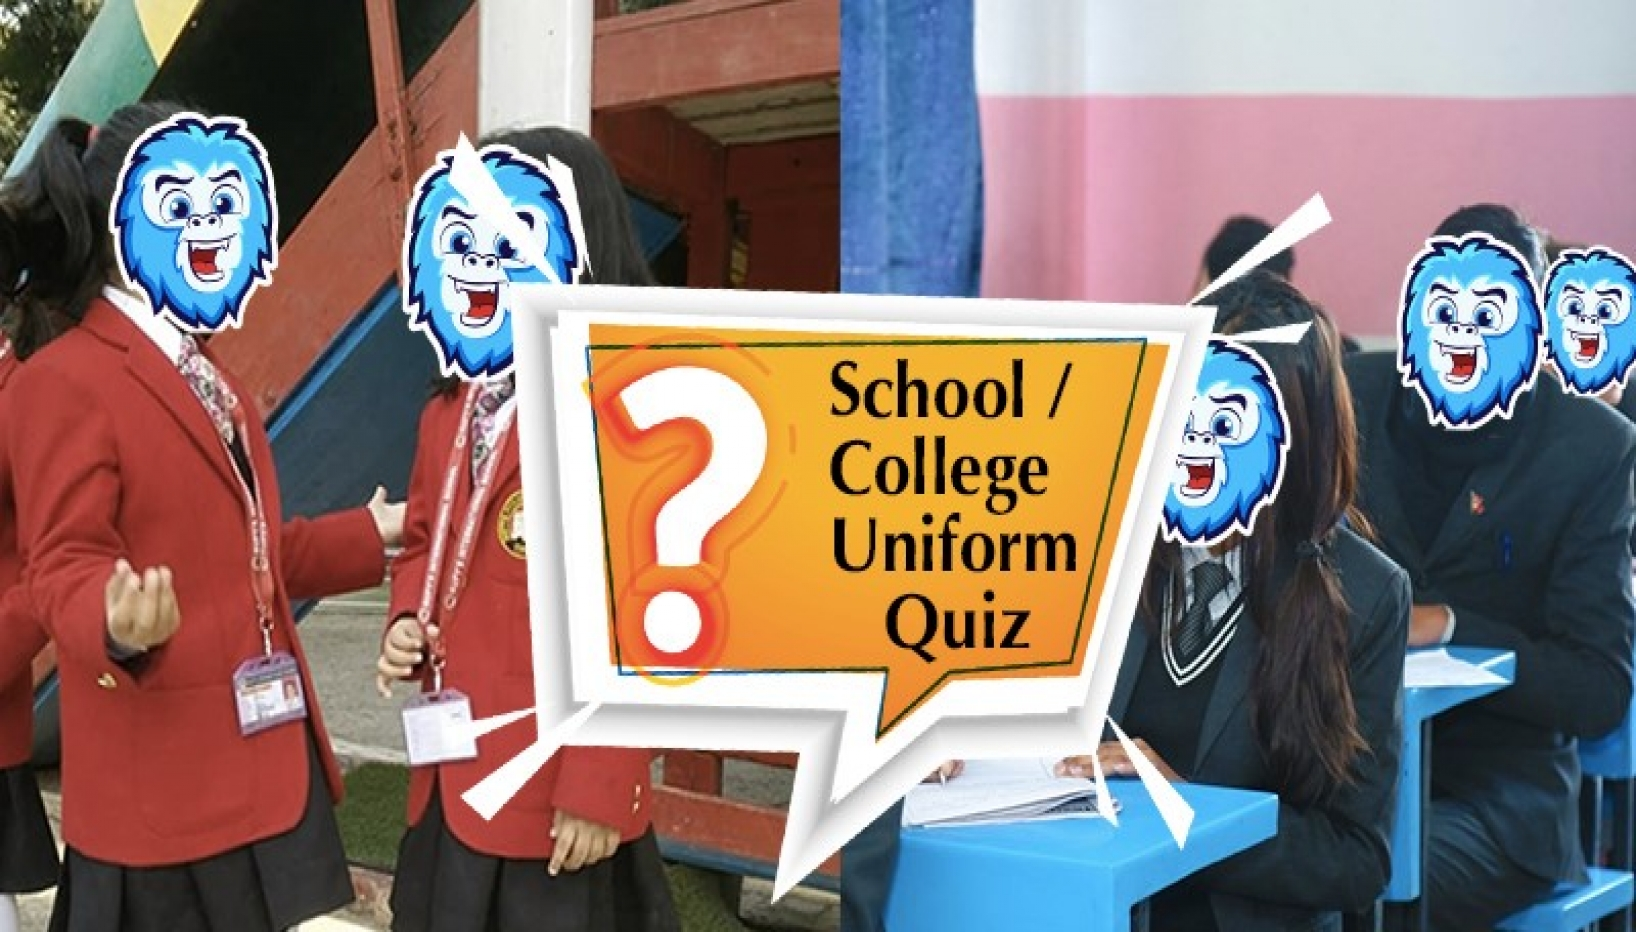 Back To School Quiz: Match The Following Uniforms With Their Respective Schools / Colleges